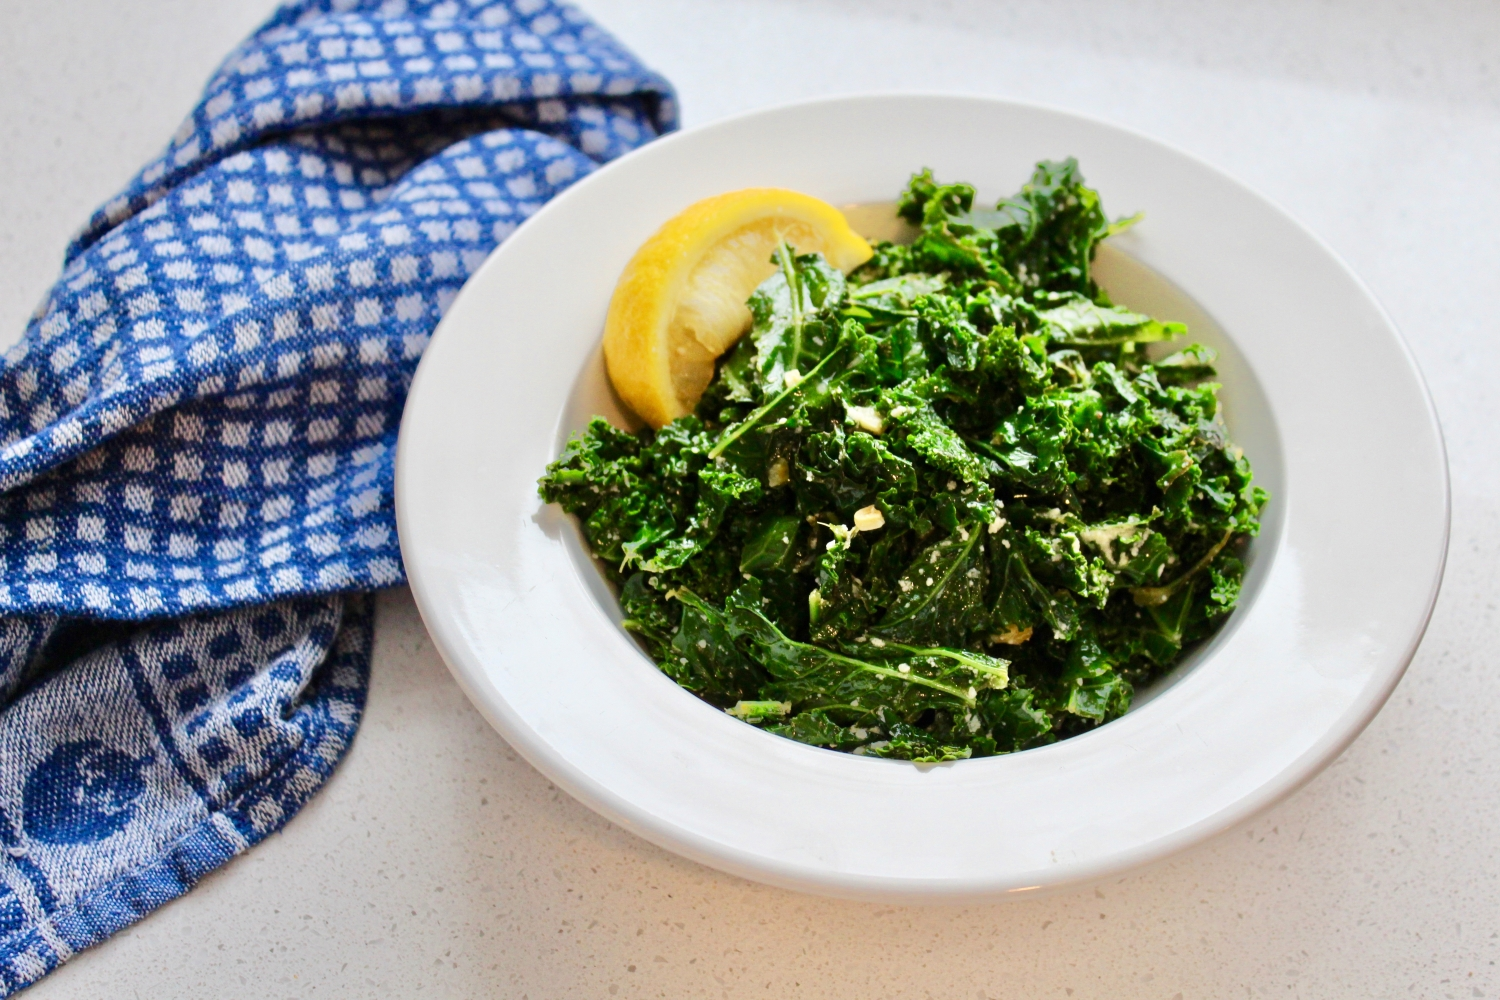 Warm Lemon Garlic Kale with Parmesan